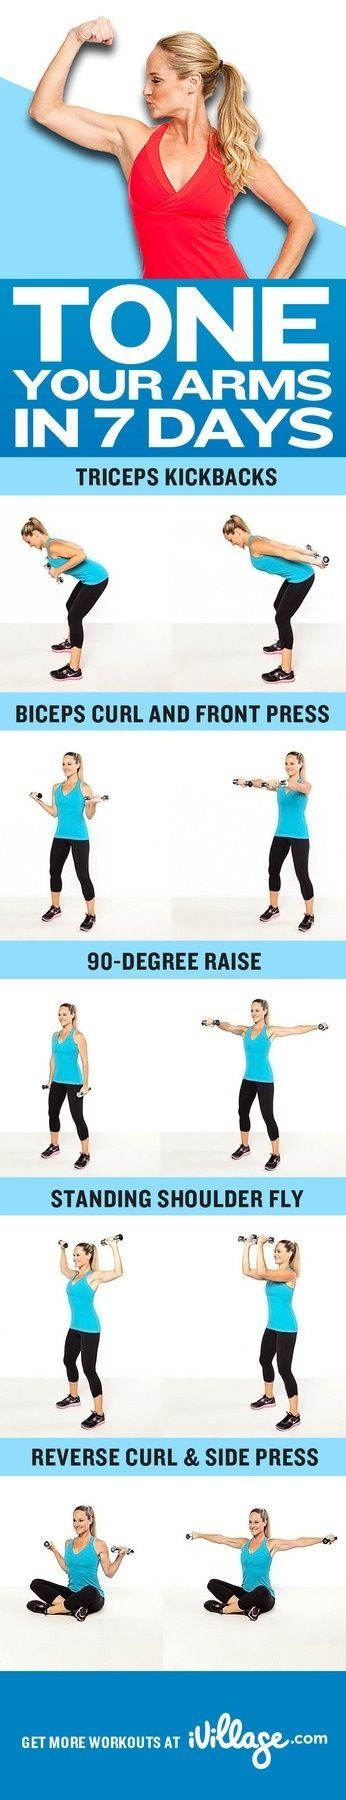 These 27 Workout Diagrams Are All You Need To Get In Shape This